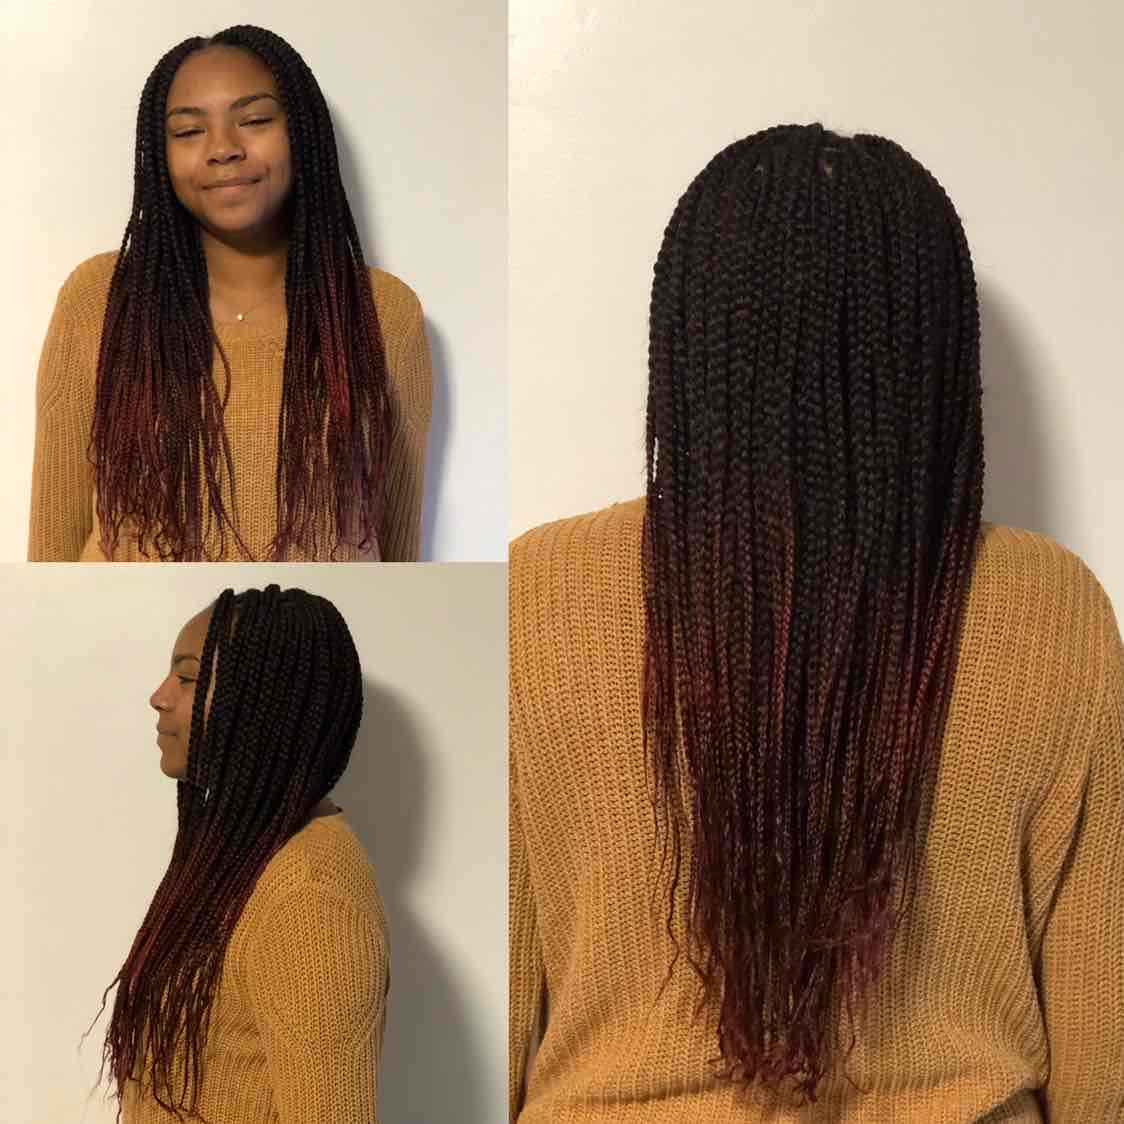 salon de coiffure afro tresse tresses box braids crochet braids vanilles tissages paris 75 77 78 91 92 93 94 95 OHMJNGBI